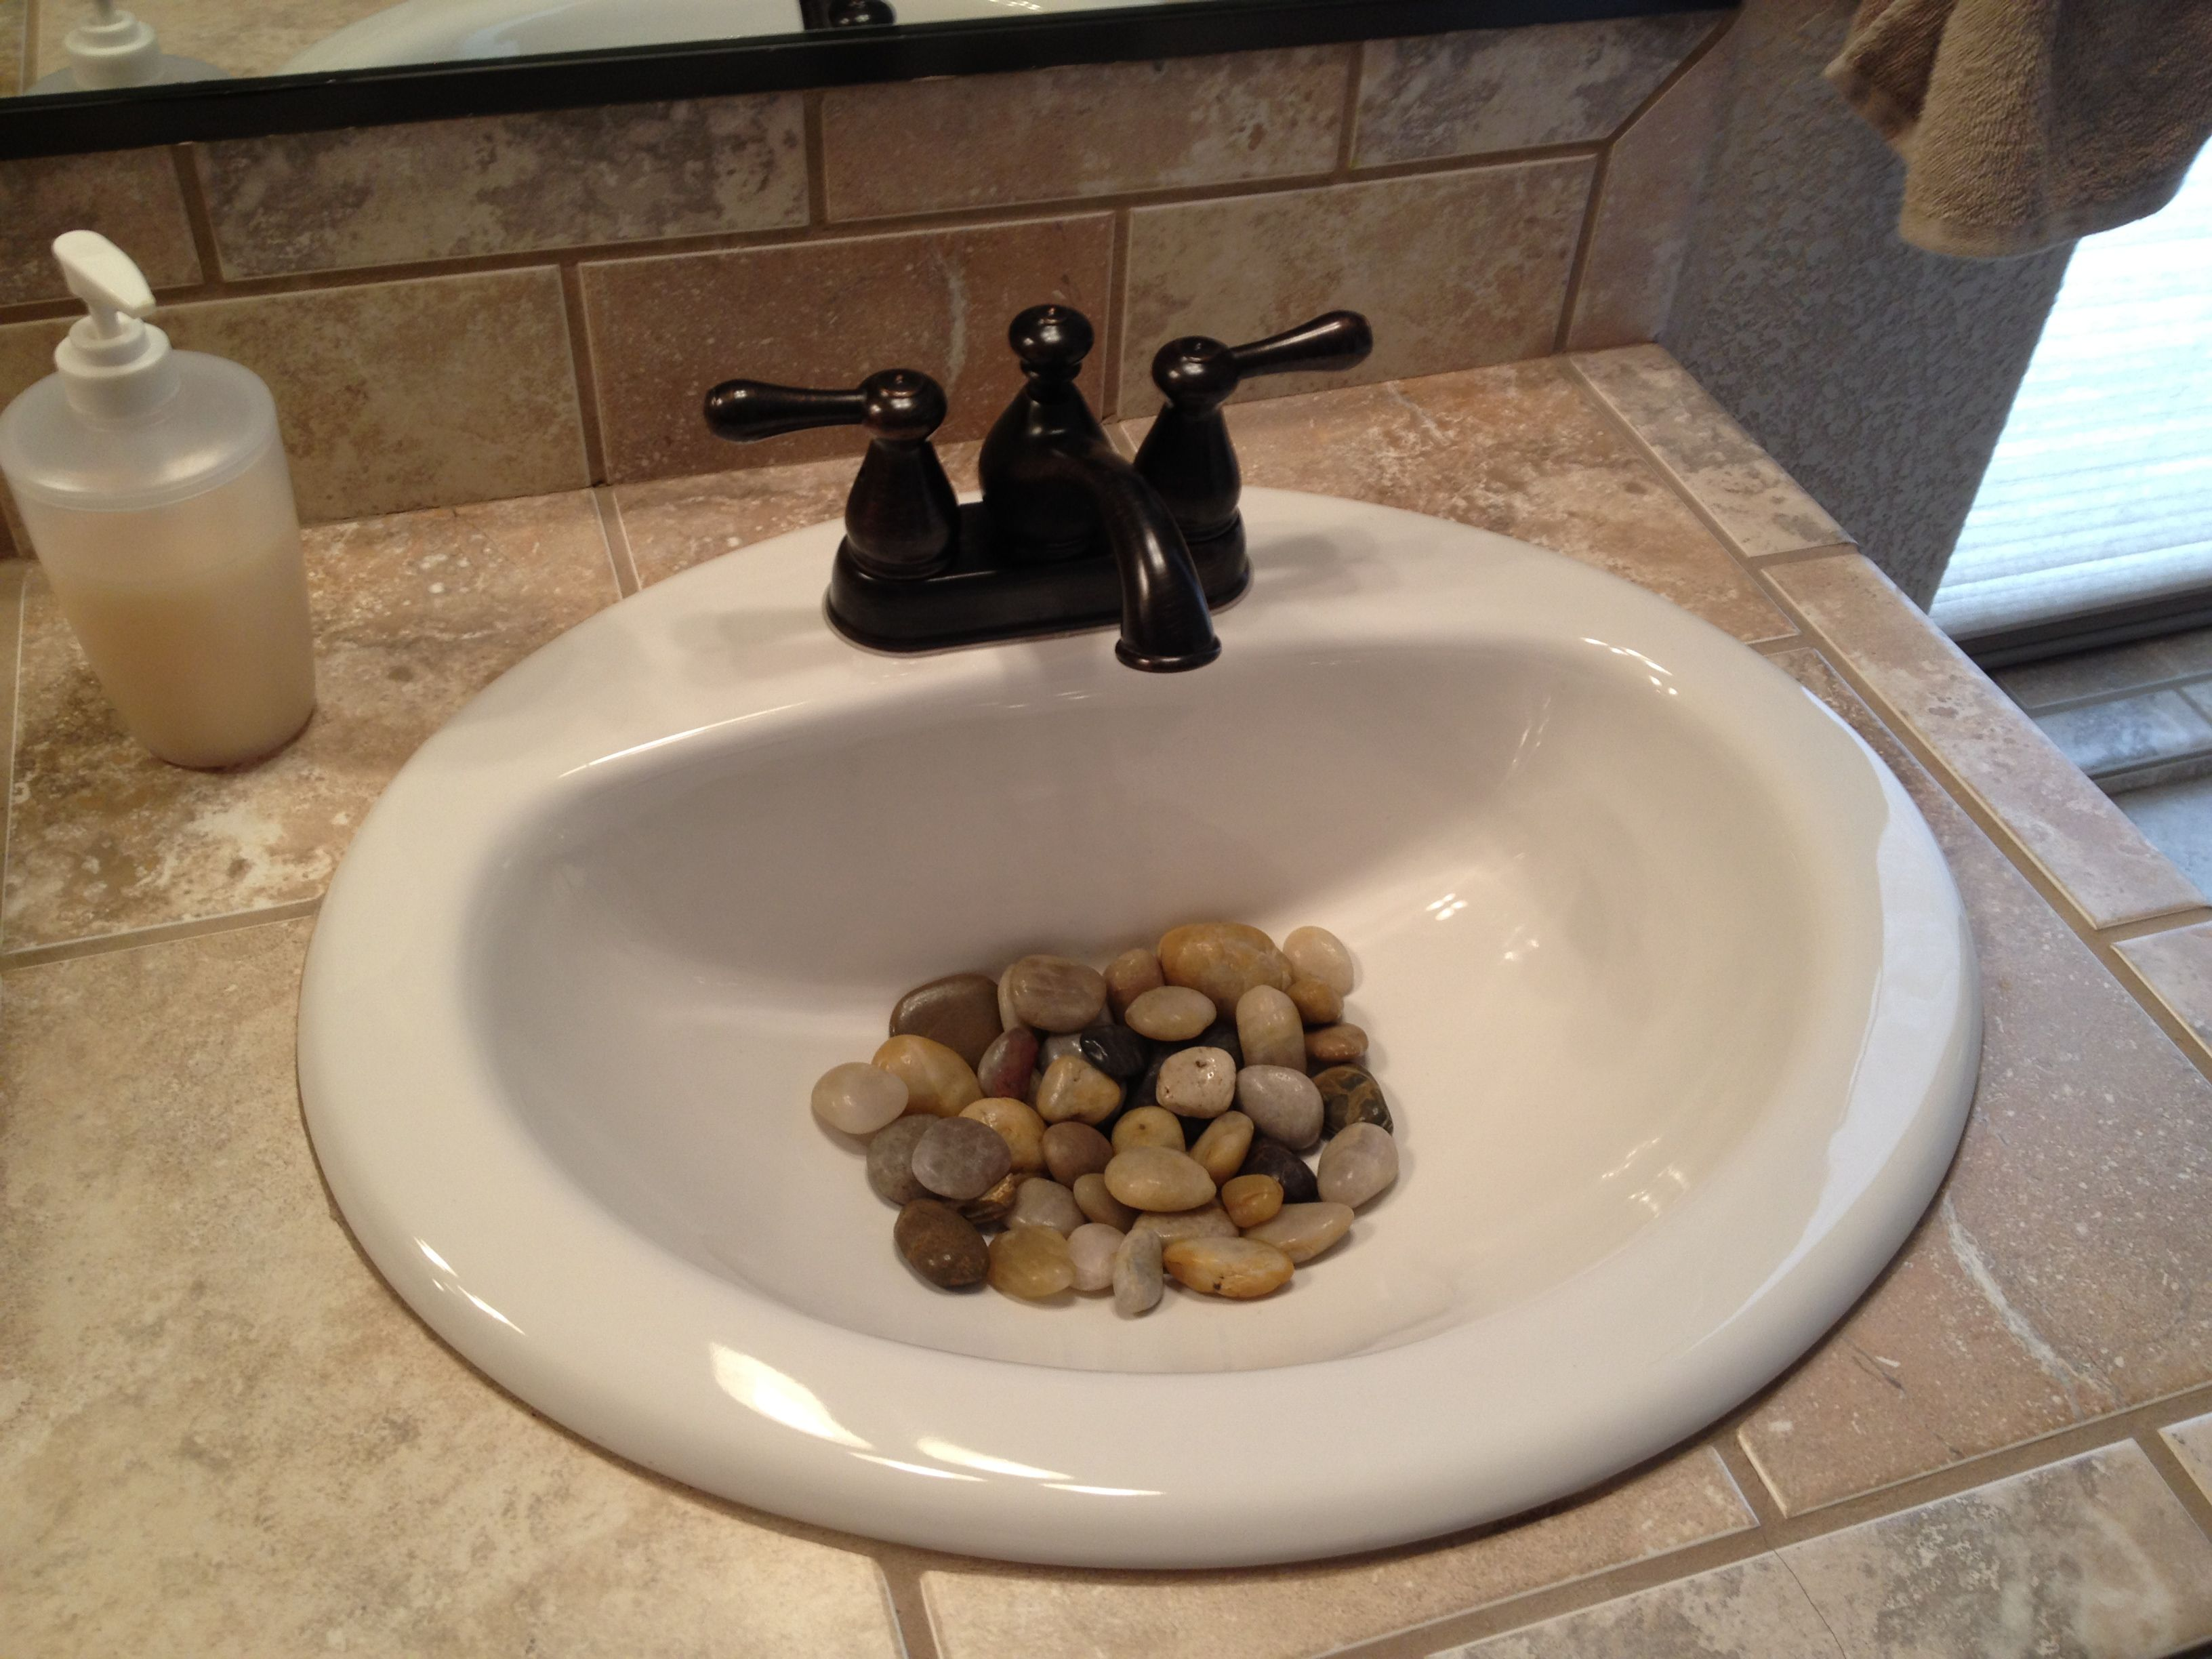 River Rocks In The Bathroom Sink A Little Feng Shui But A Neat Way To Decorate Too Home